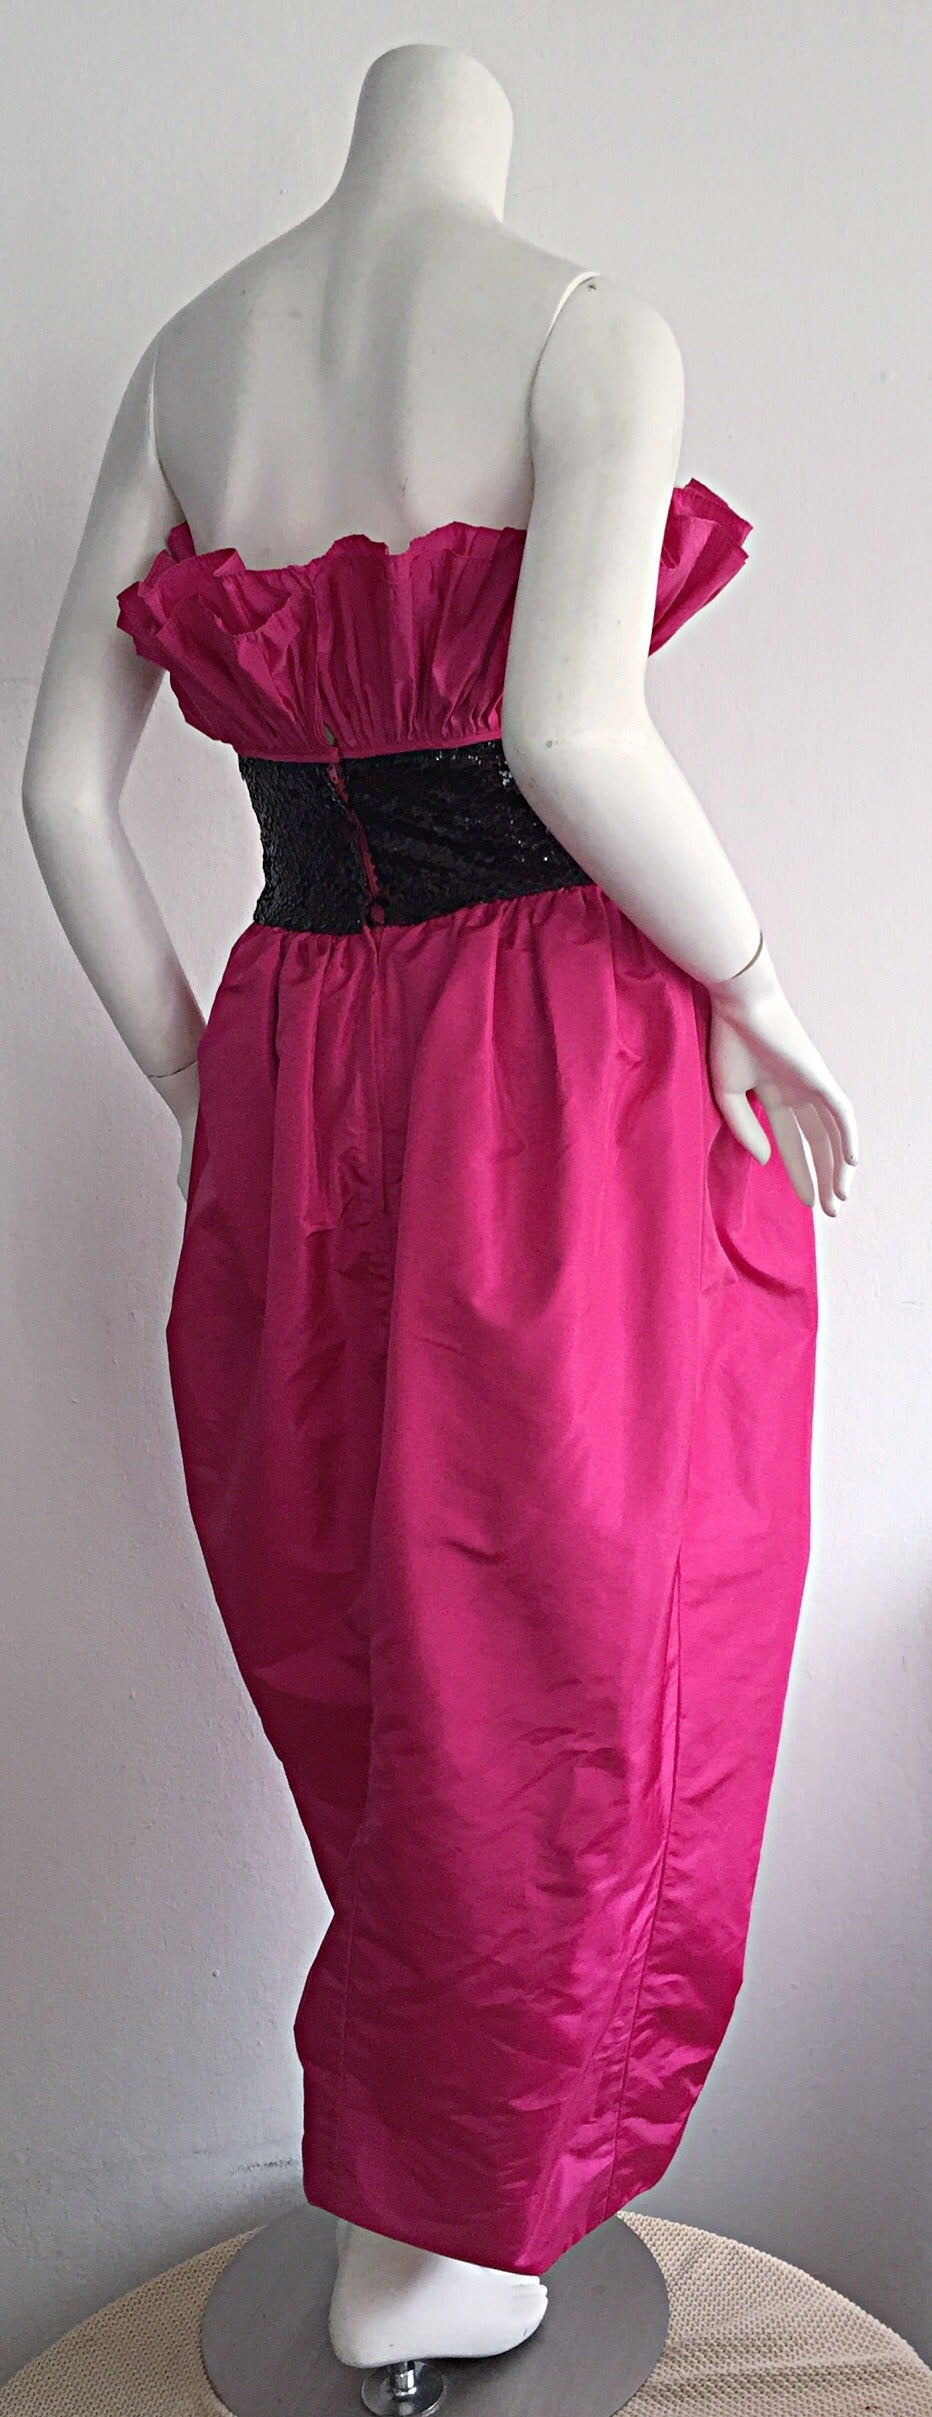 Incredible Vintage Victor Costa for Neiman Marcus Hot Pink Origami Tulip Dress In Excellent Condition For Sale In San Francisco, CA